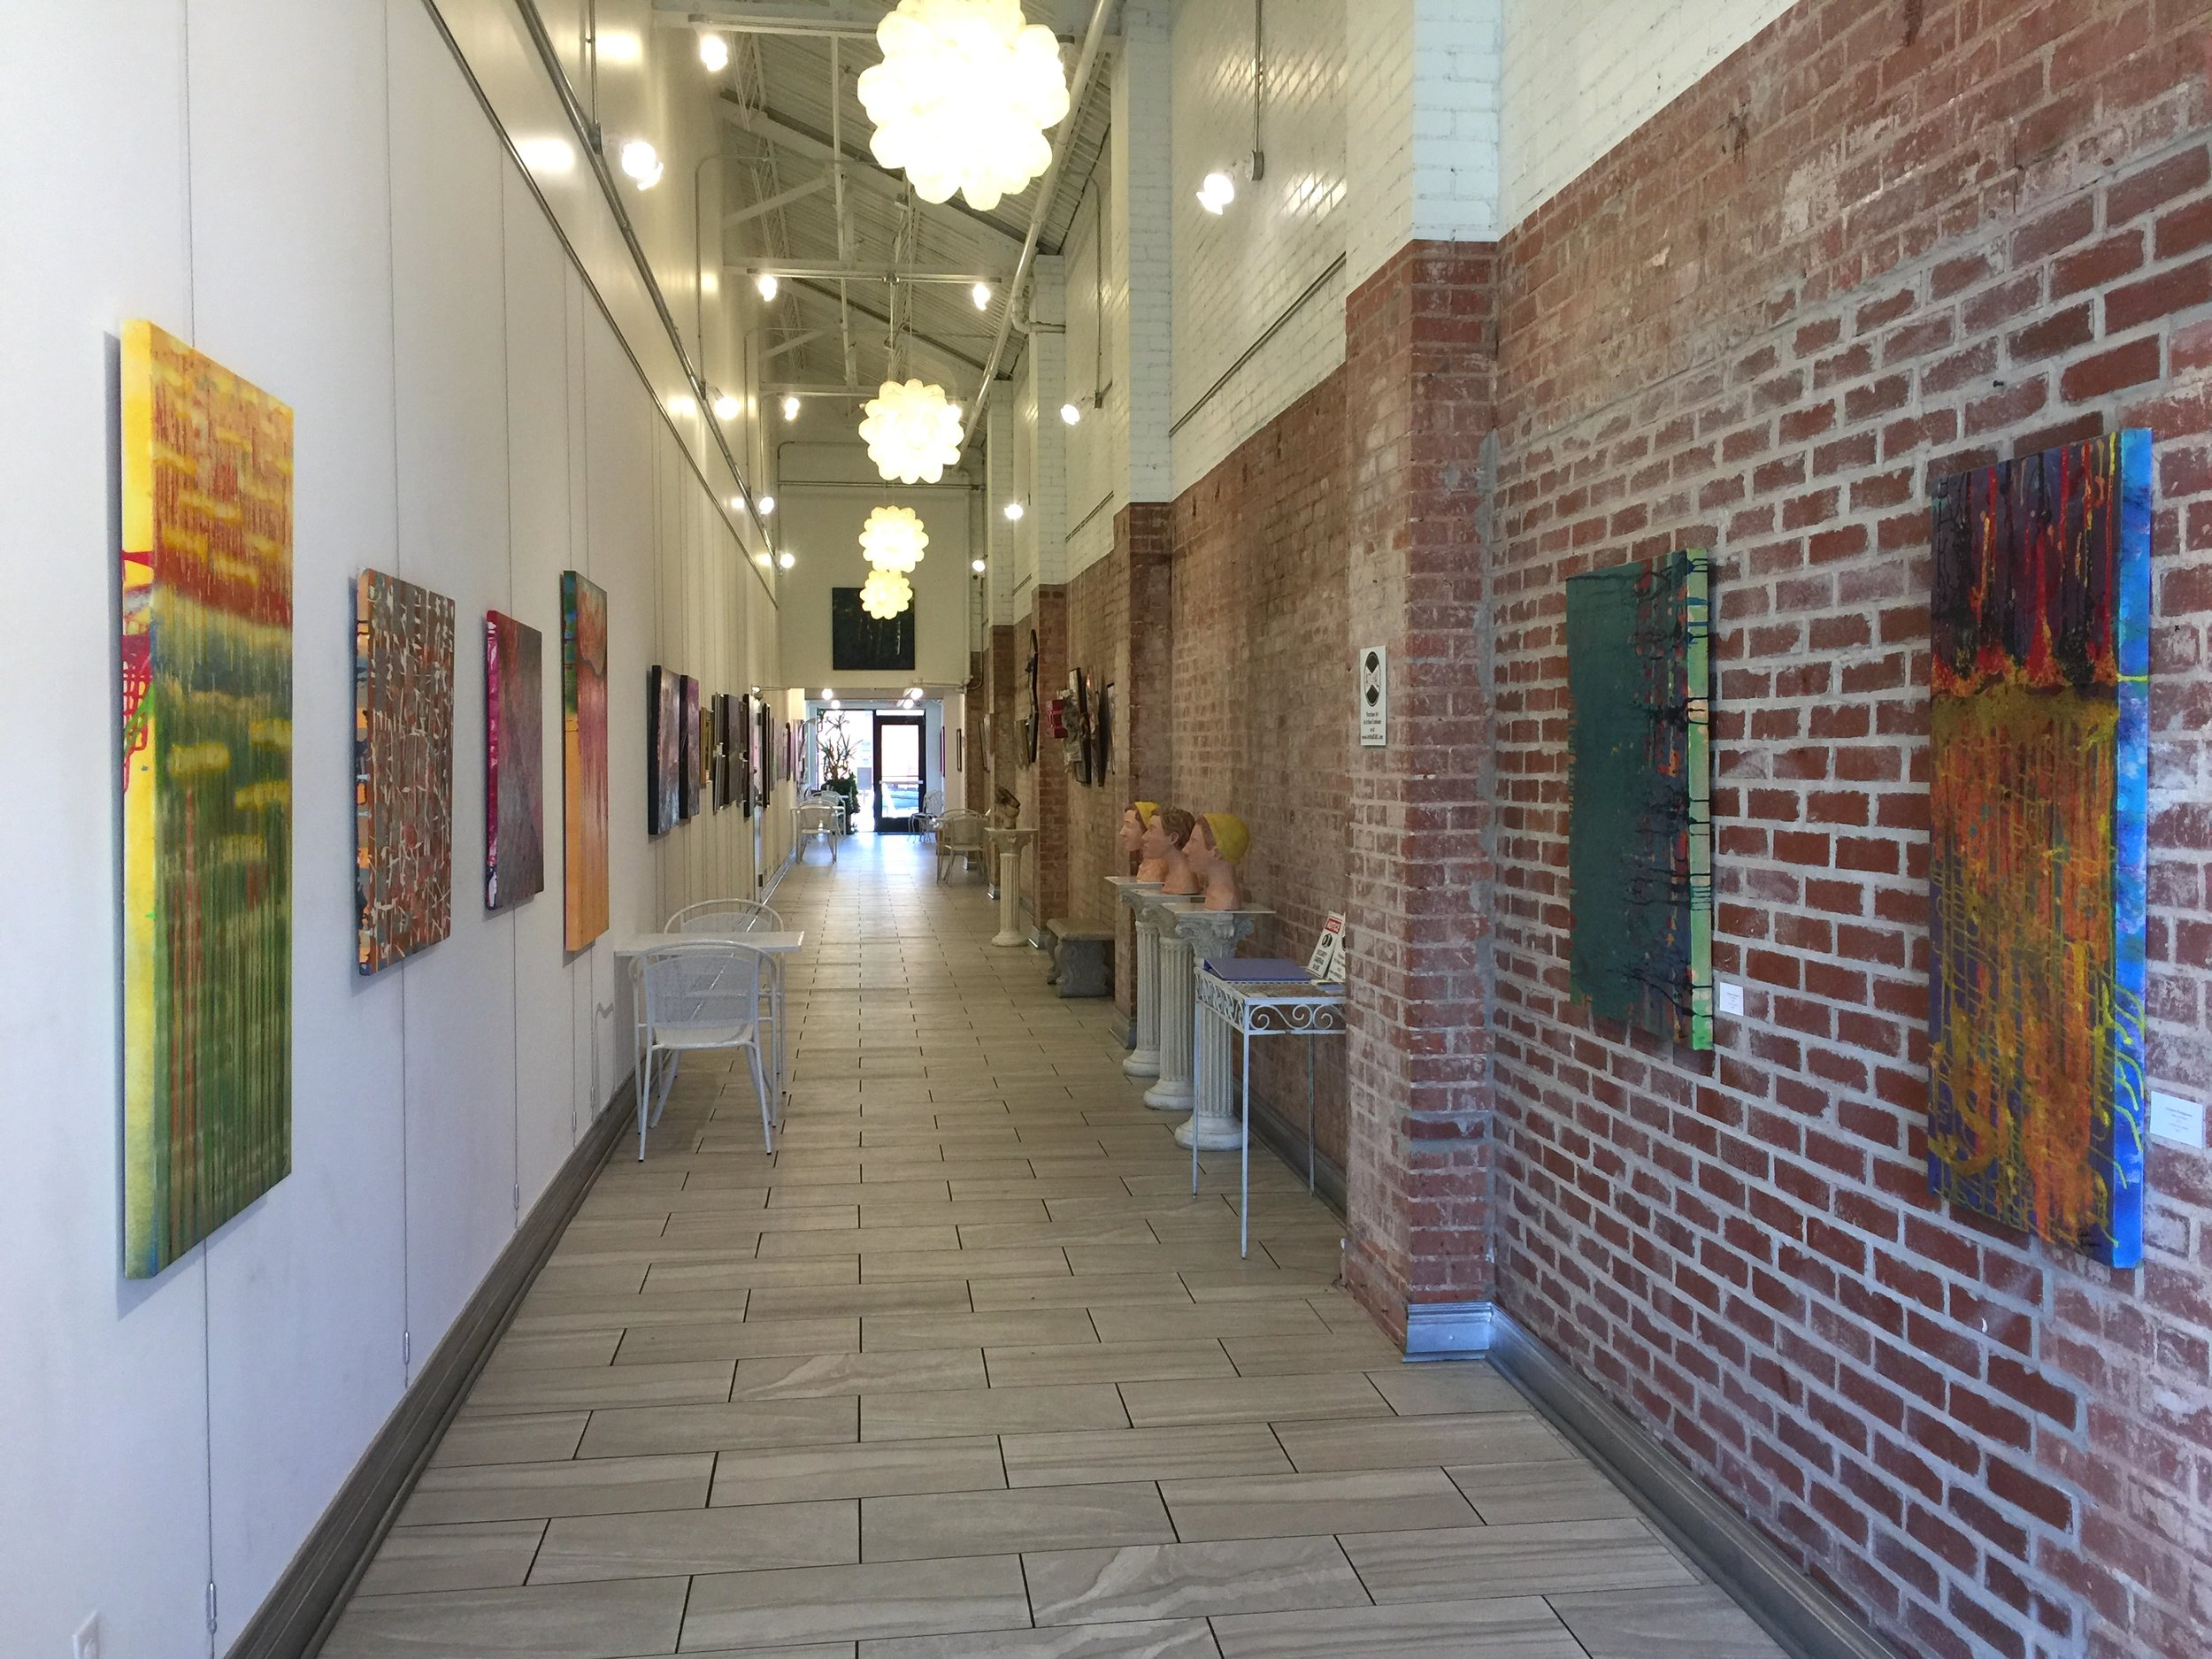 Installation view facing north, featuring paintings of Christine Partigianoni